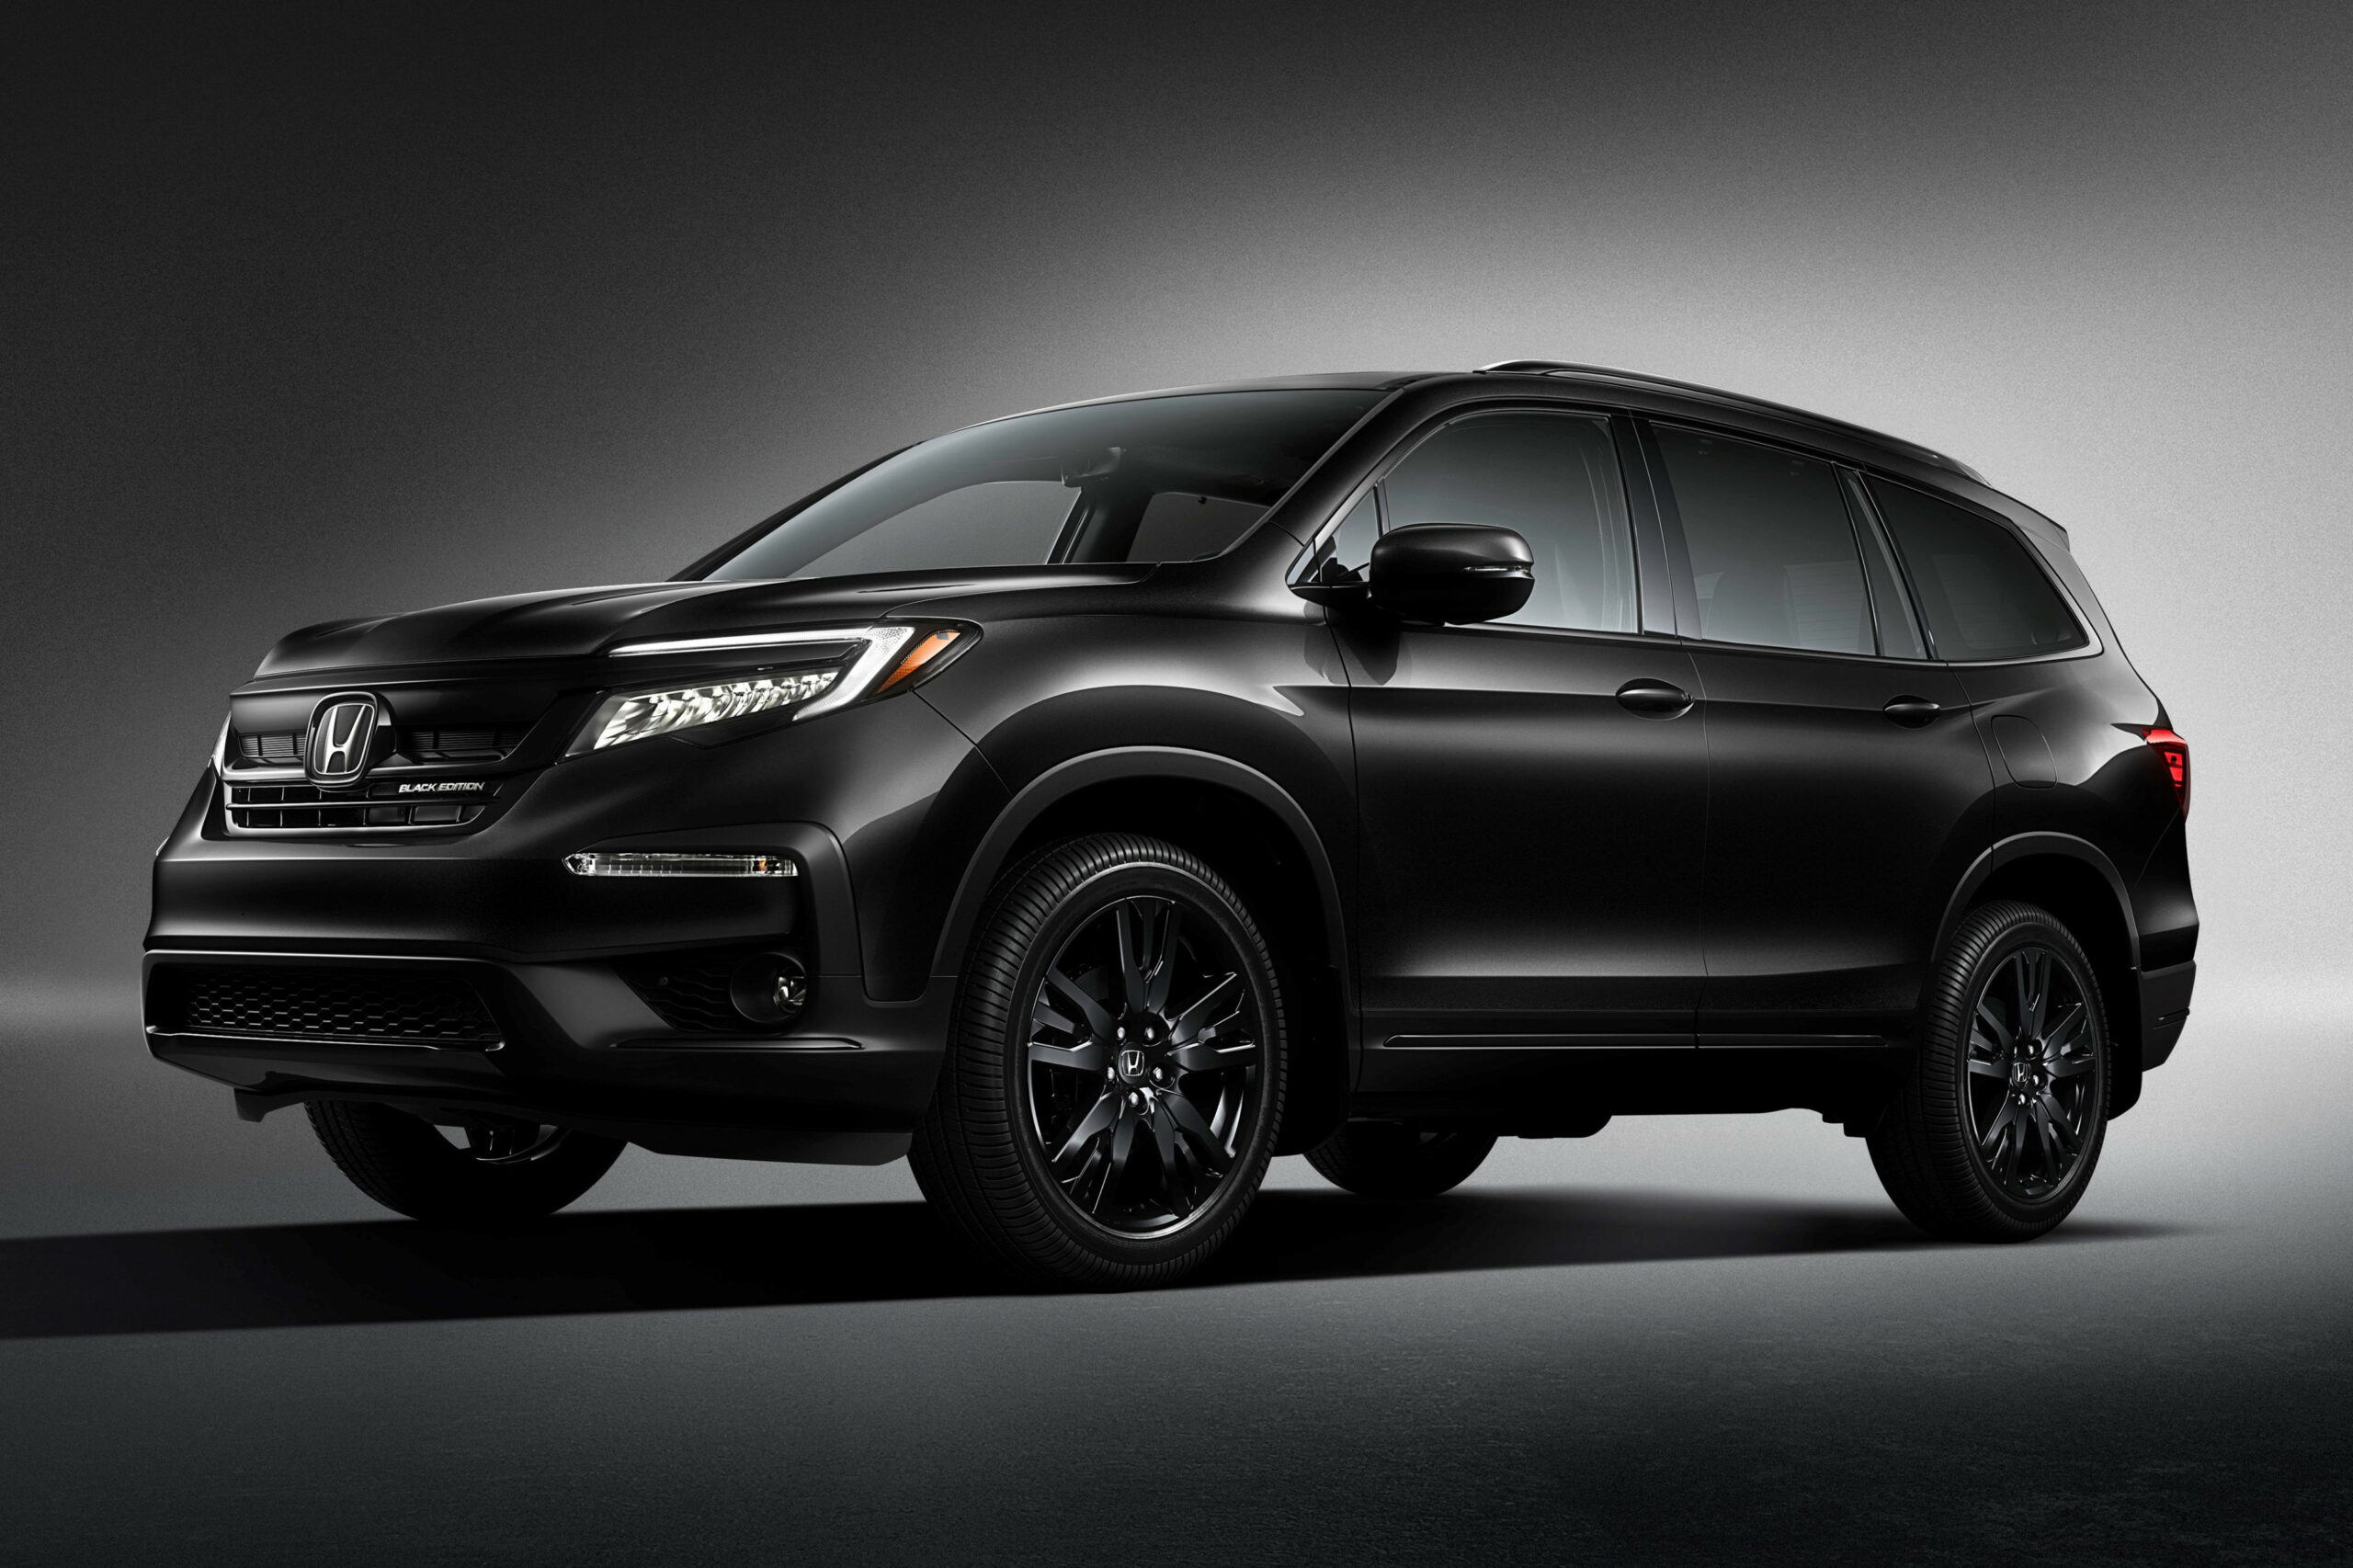 8 Honda Pilot Gets New Top-of-the-Line Black Edition, $8 Hike ..